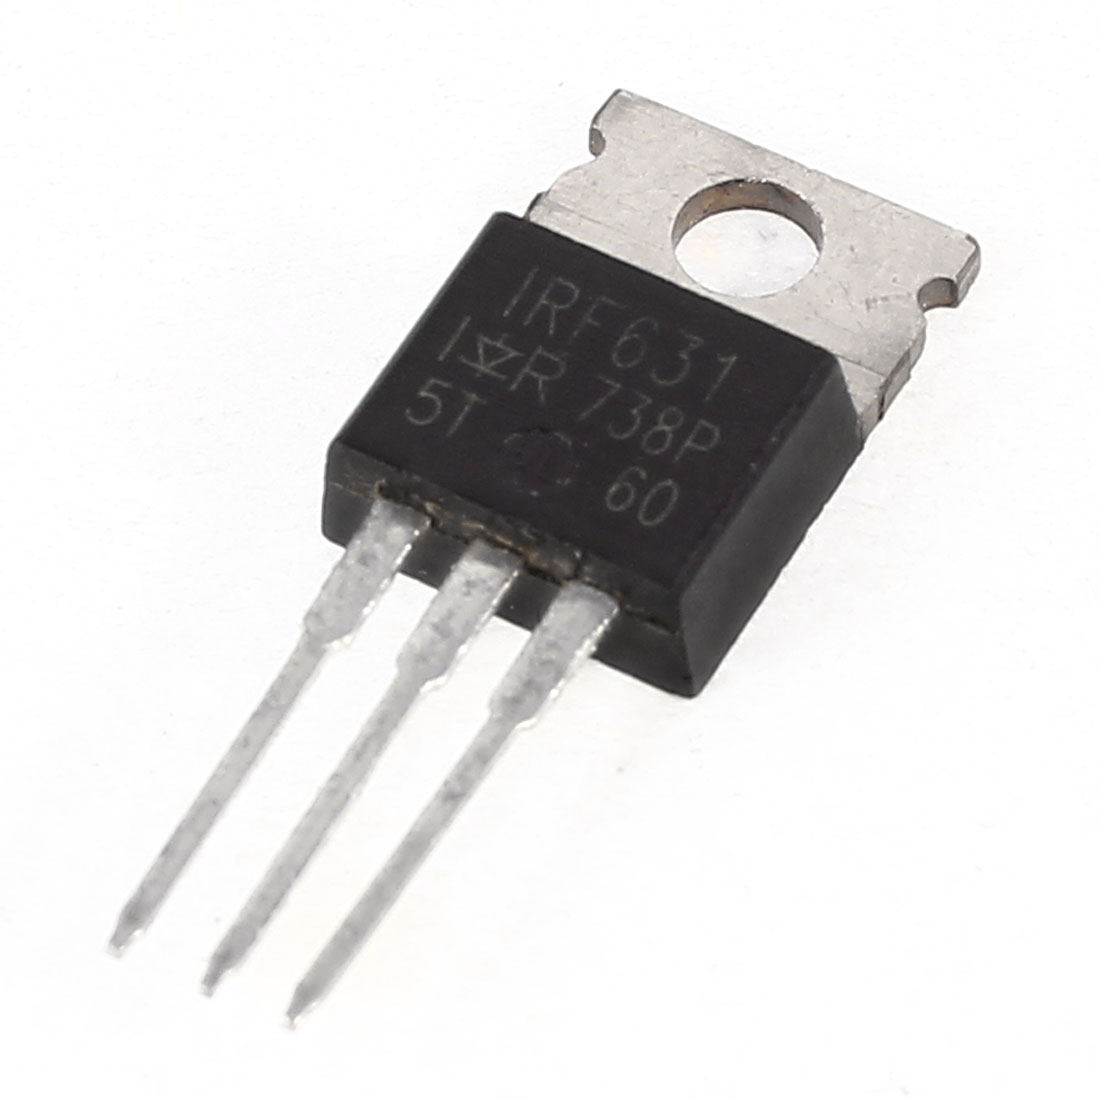 IRF631 Fast Switching Speed Semiconductor NPN Power Transistor 150V 0.40Ohm